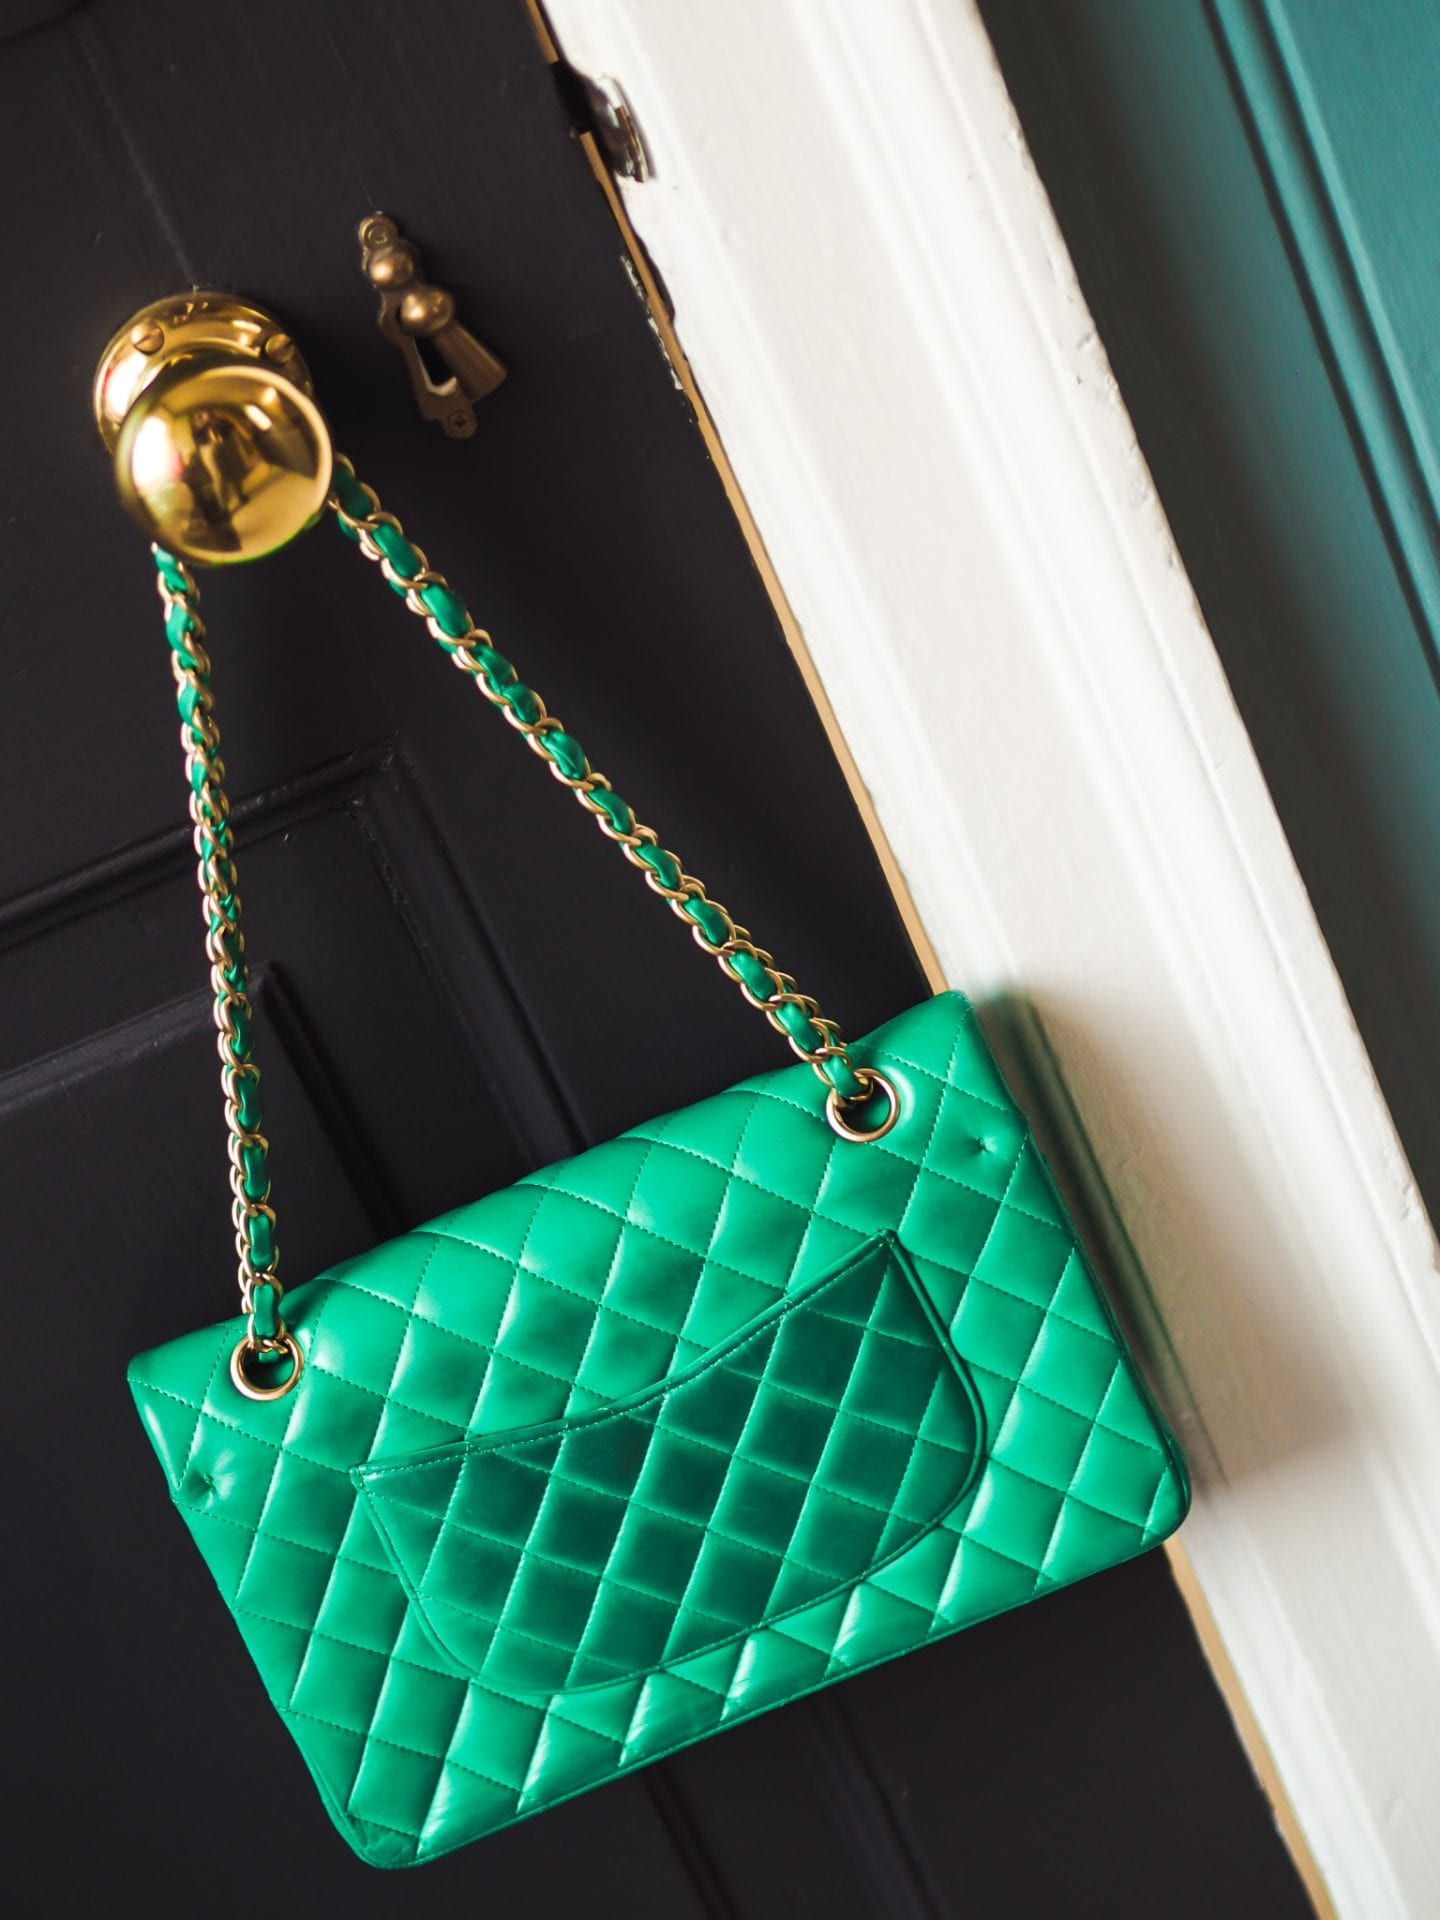 chanel classic flap handbag green colour color transfer results